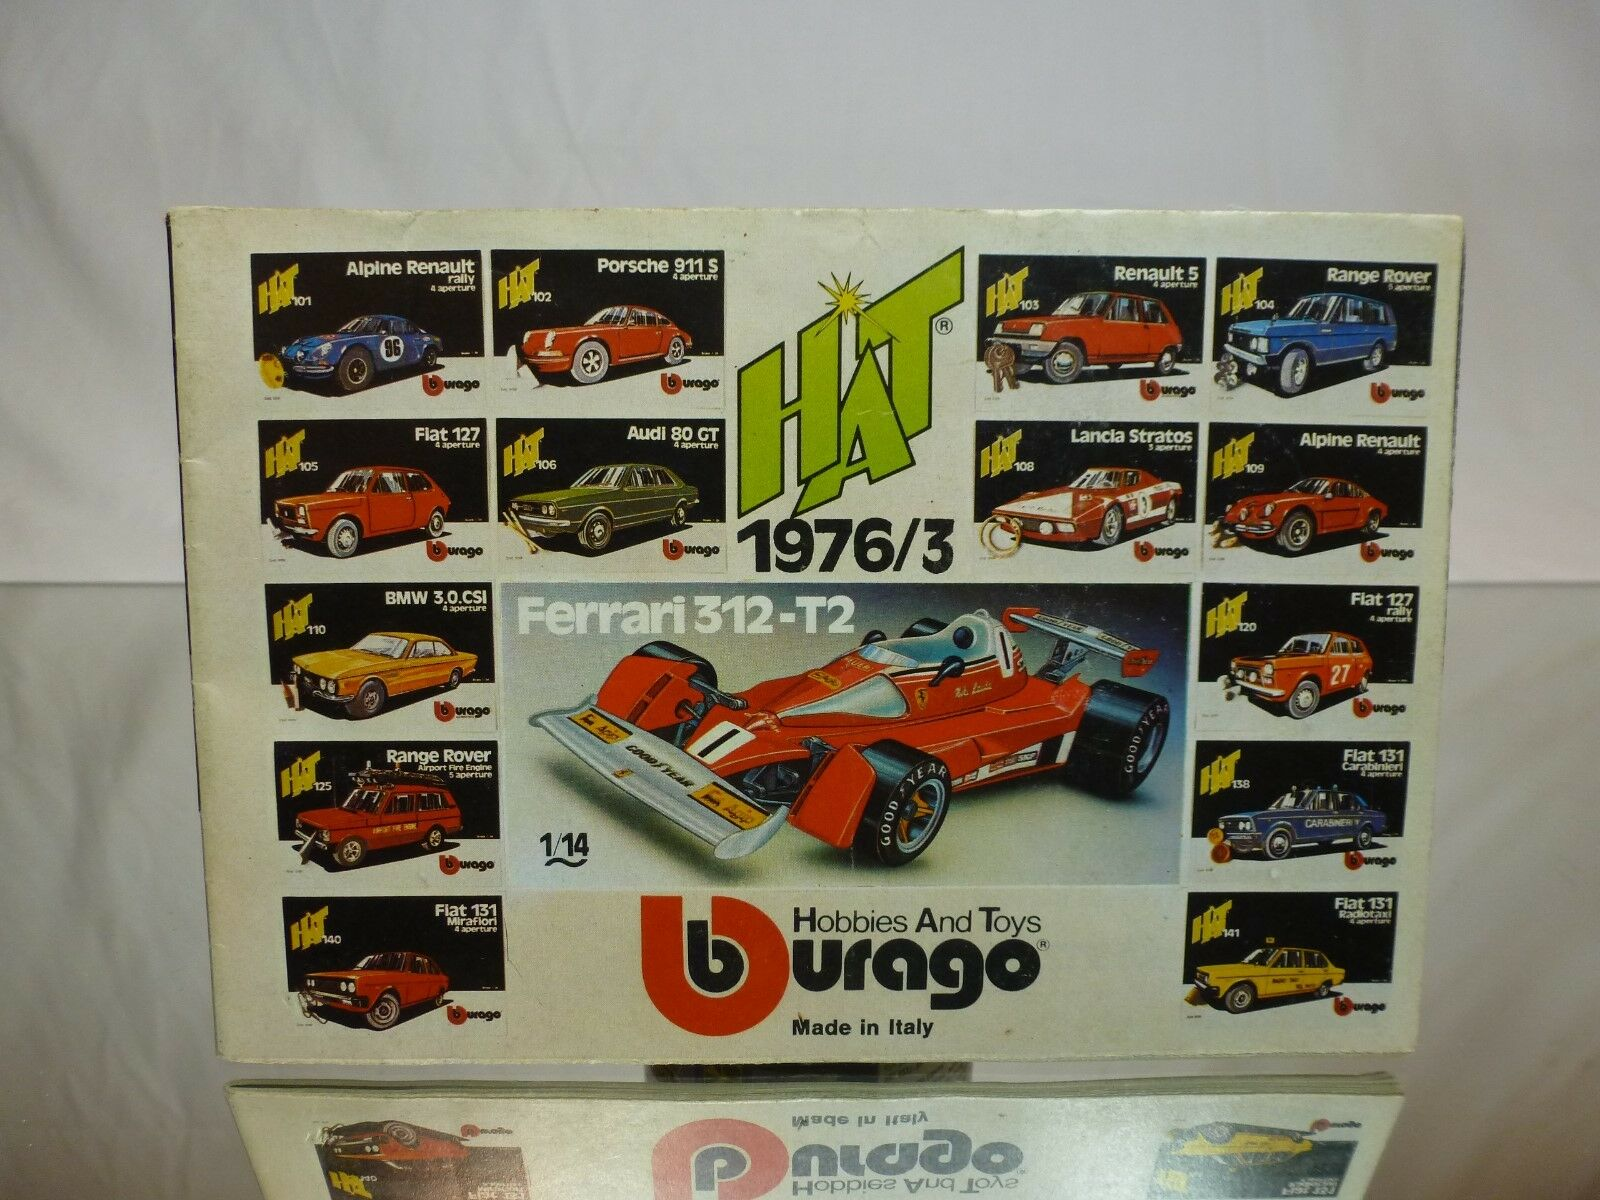 BBURAGO CATALOG FLYER - - - HAT 1976 3   - NEAR MINT CONDITION - EXTREMELY RARE 6f04e8